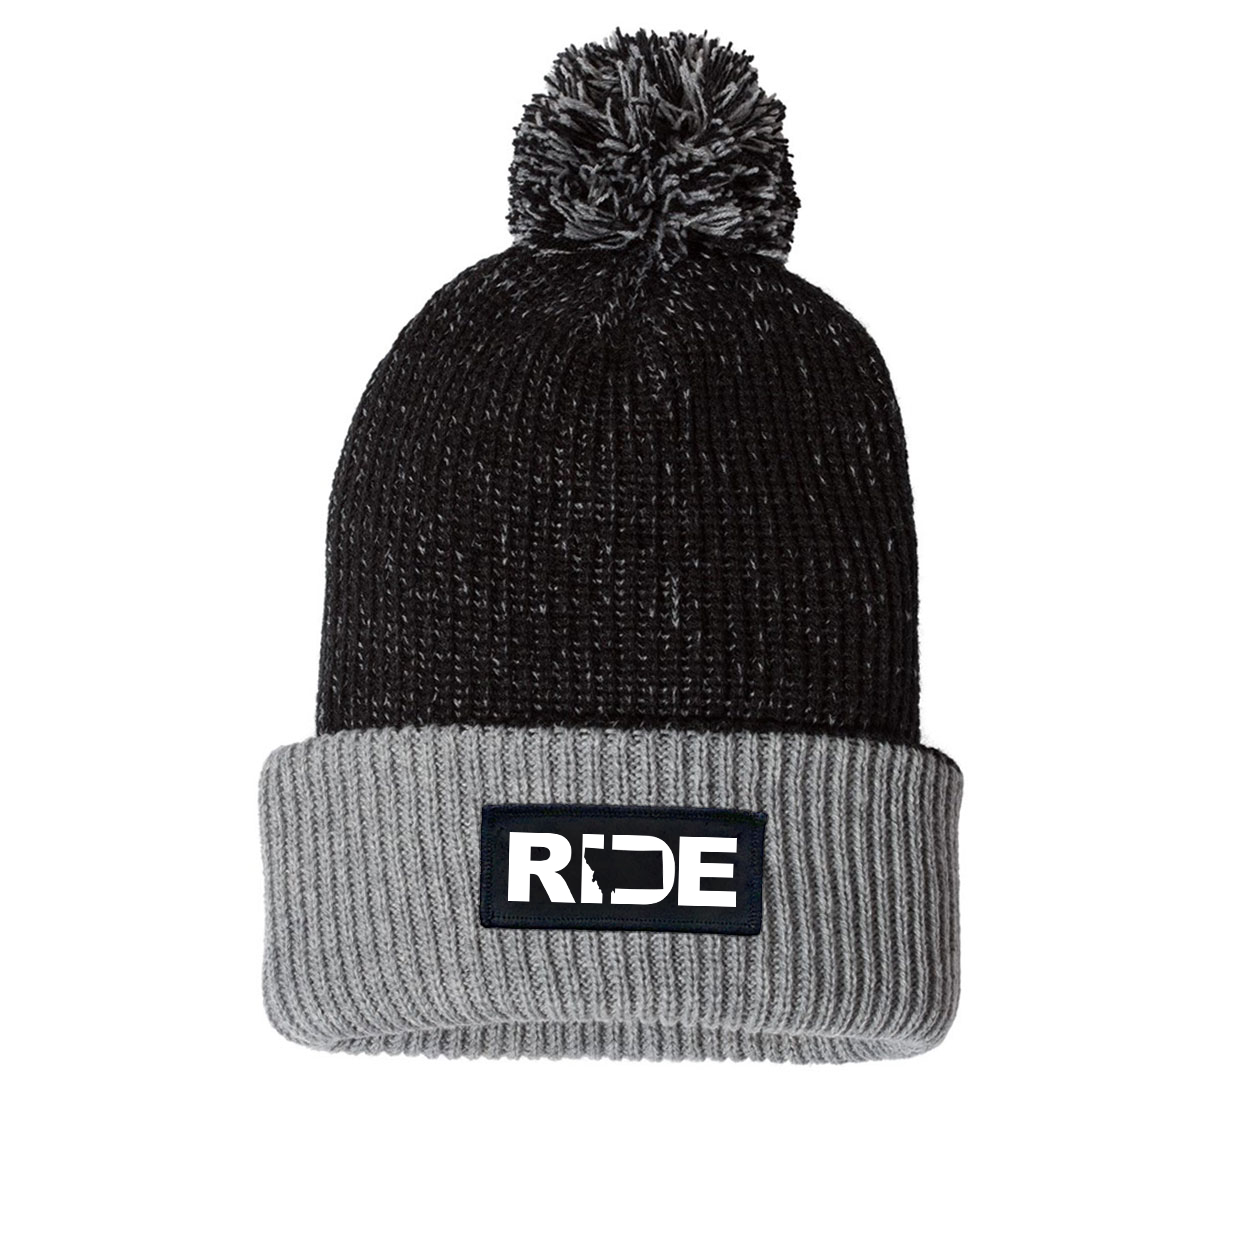 Ride Montana Night Out Woven Patch Roll Up Pom Knit Beanie Black/Gray (White Logo)